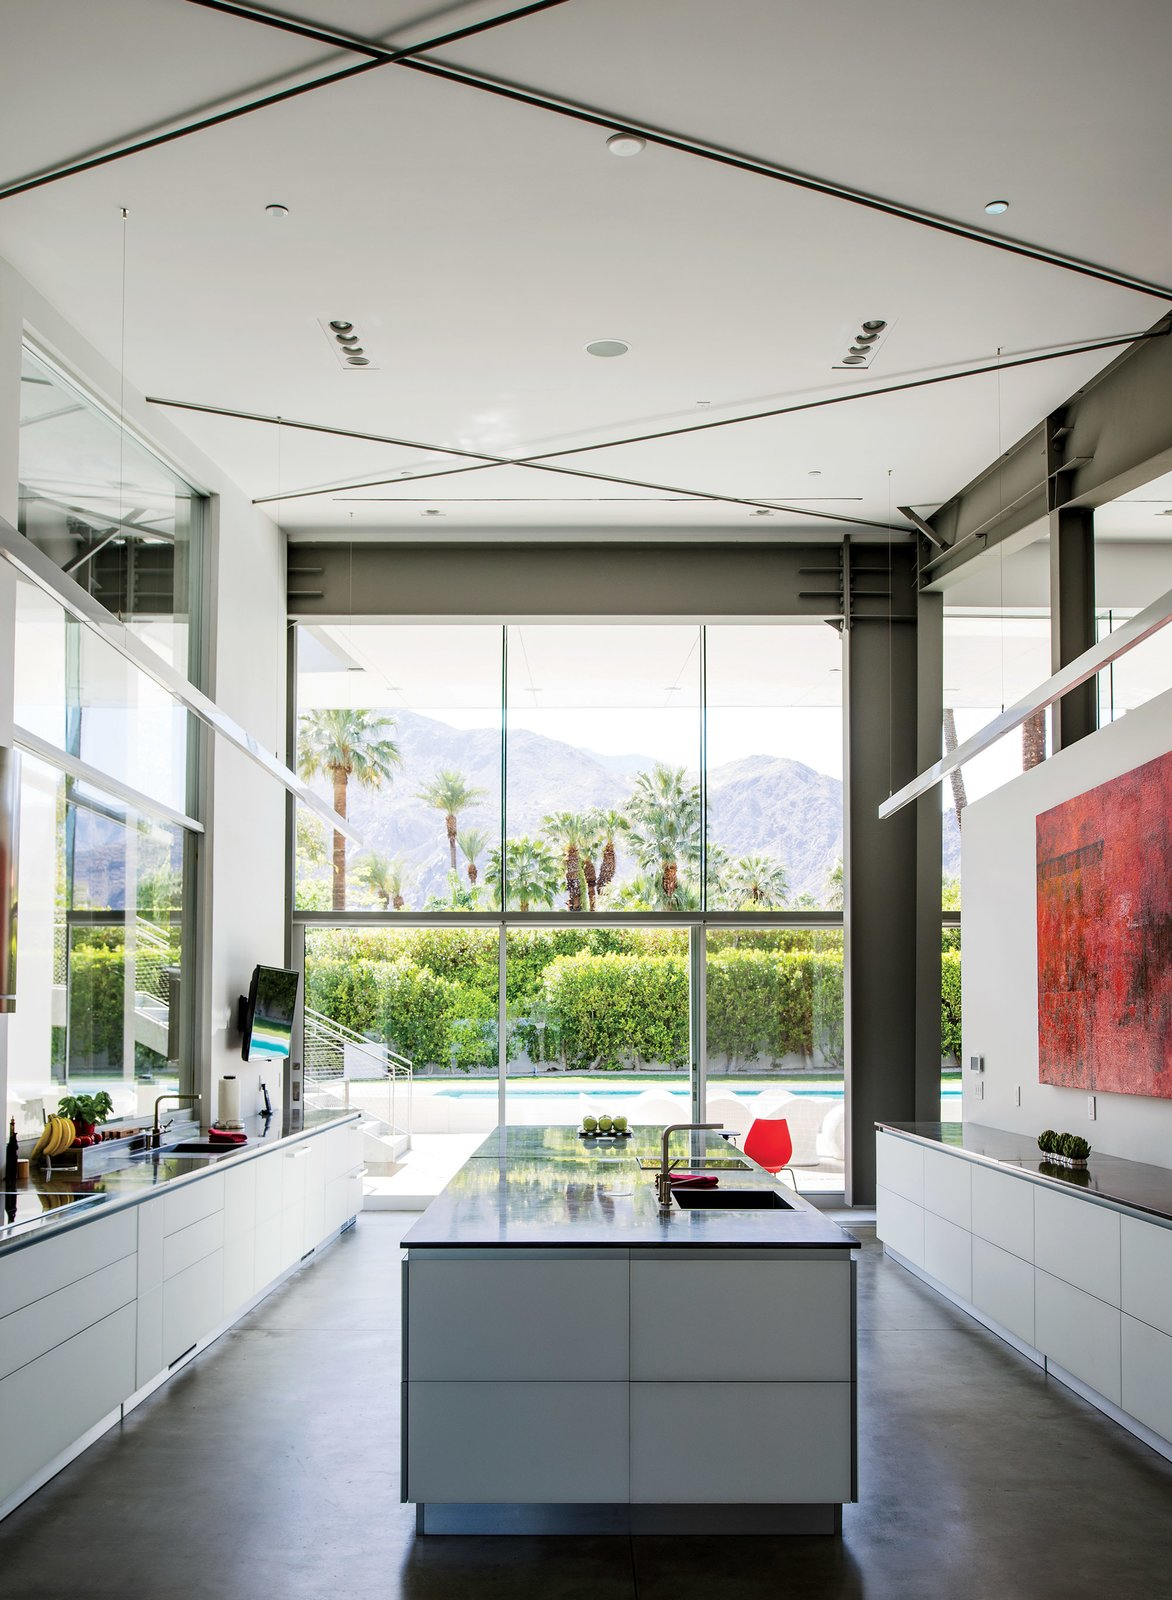 In the kitchen, which faces west to capture views of the San Jacinto Mountains, a large red work by James Jensen punctuates one wall. The induction cooktop is from Gaggenau; the sinks were sourced from Blanco. Tagged: Kitchen, Ceiling Lighting, Concrete Floor, and Recessed Lighting.  Photo 2 of 12 in An Energy-Efficient Hybrid Prefab Keeps Cool in the Palm Springs Desert